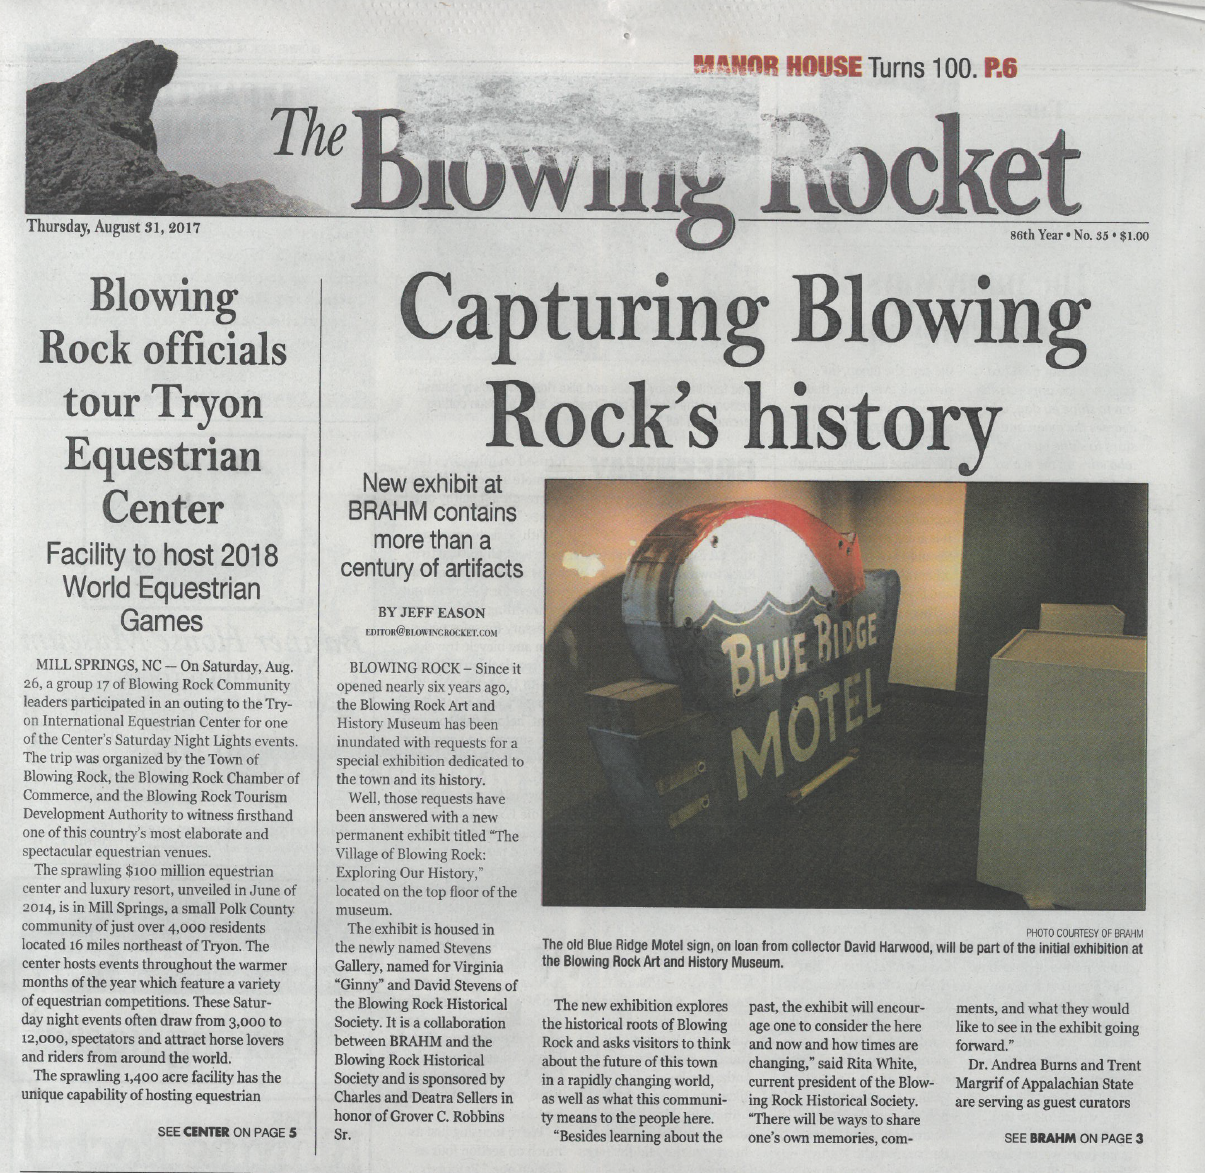 Capturing Blowing Rock's History